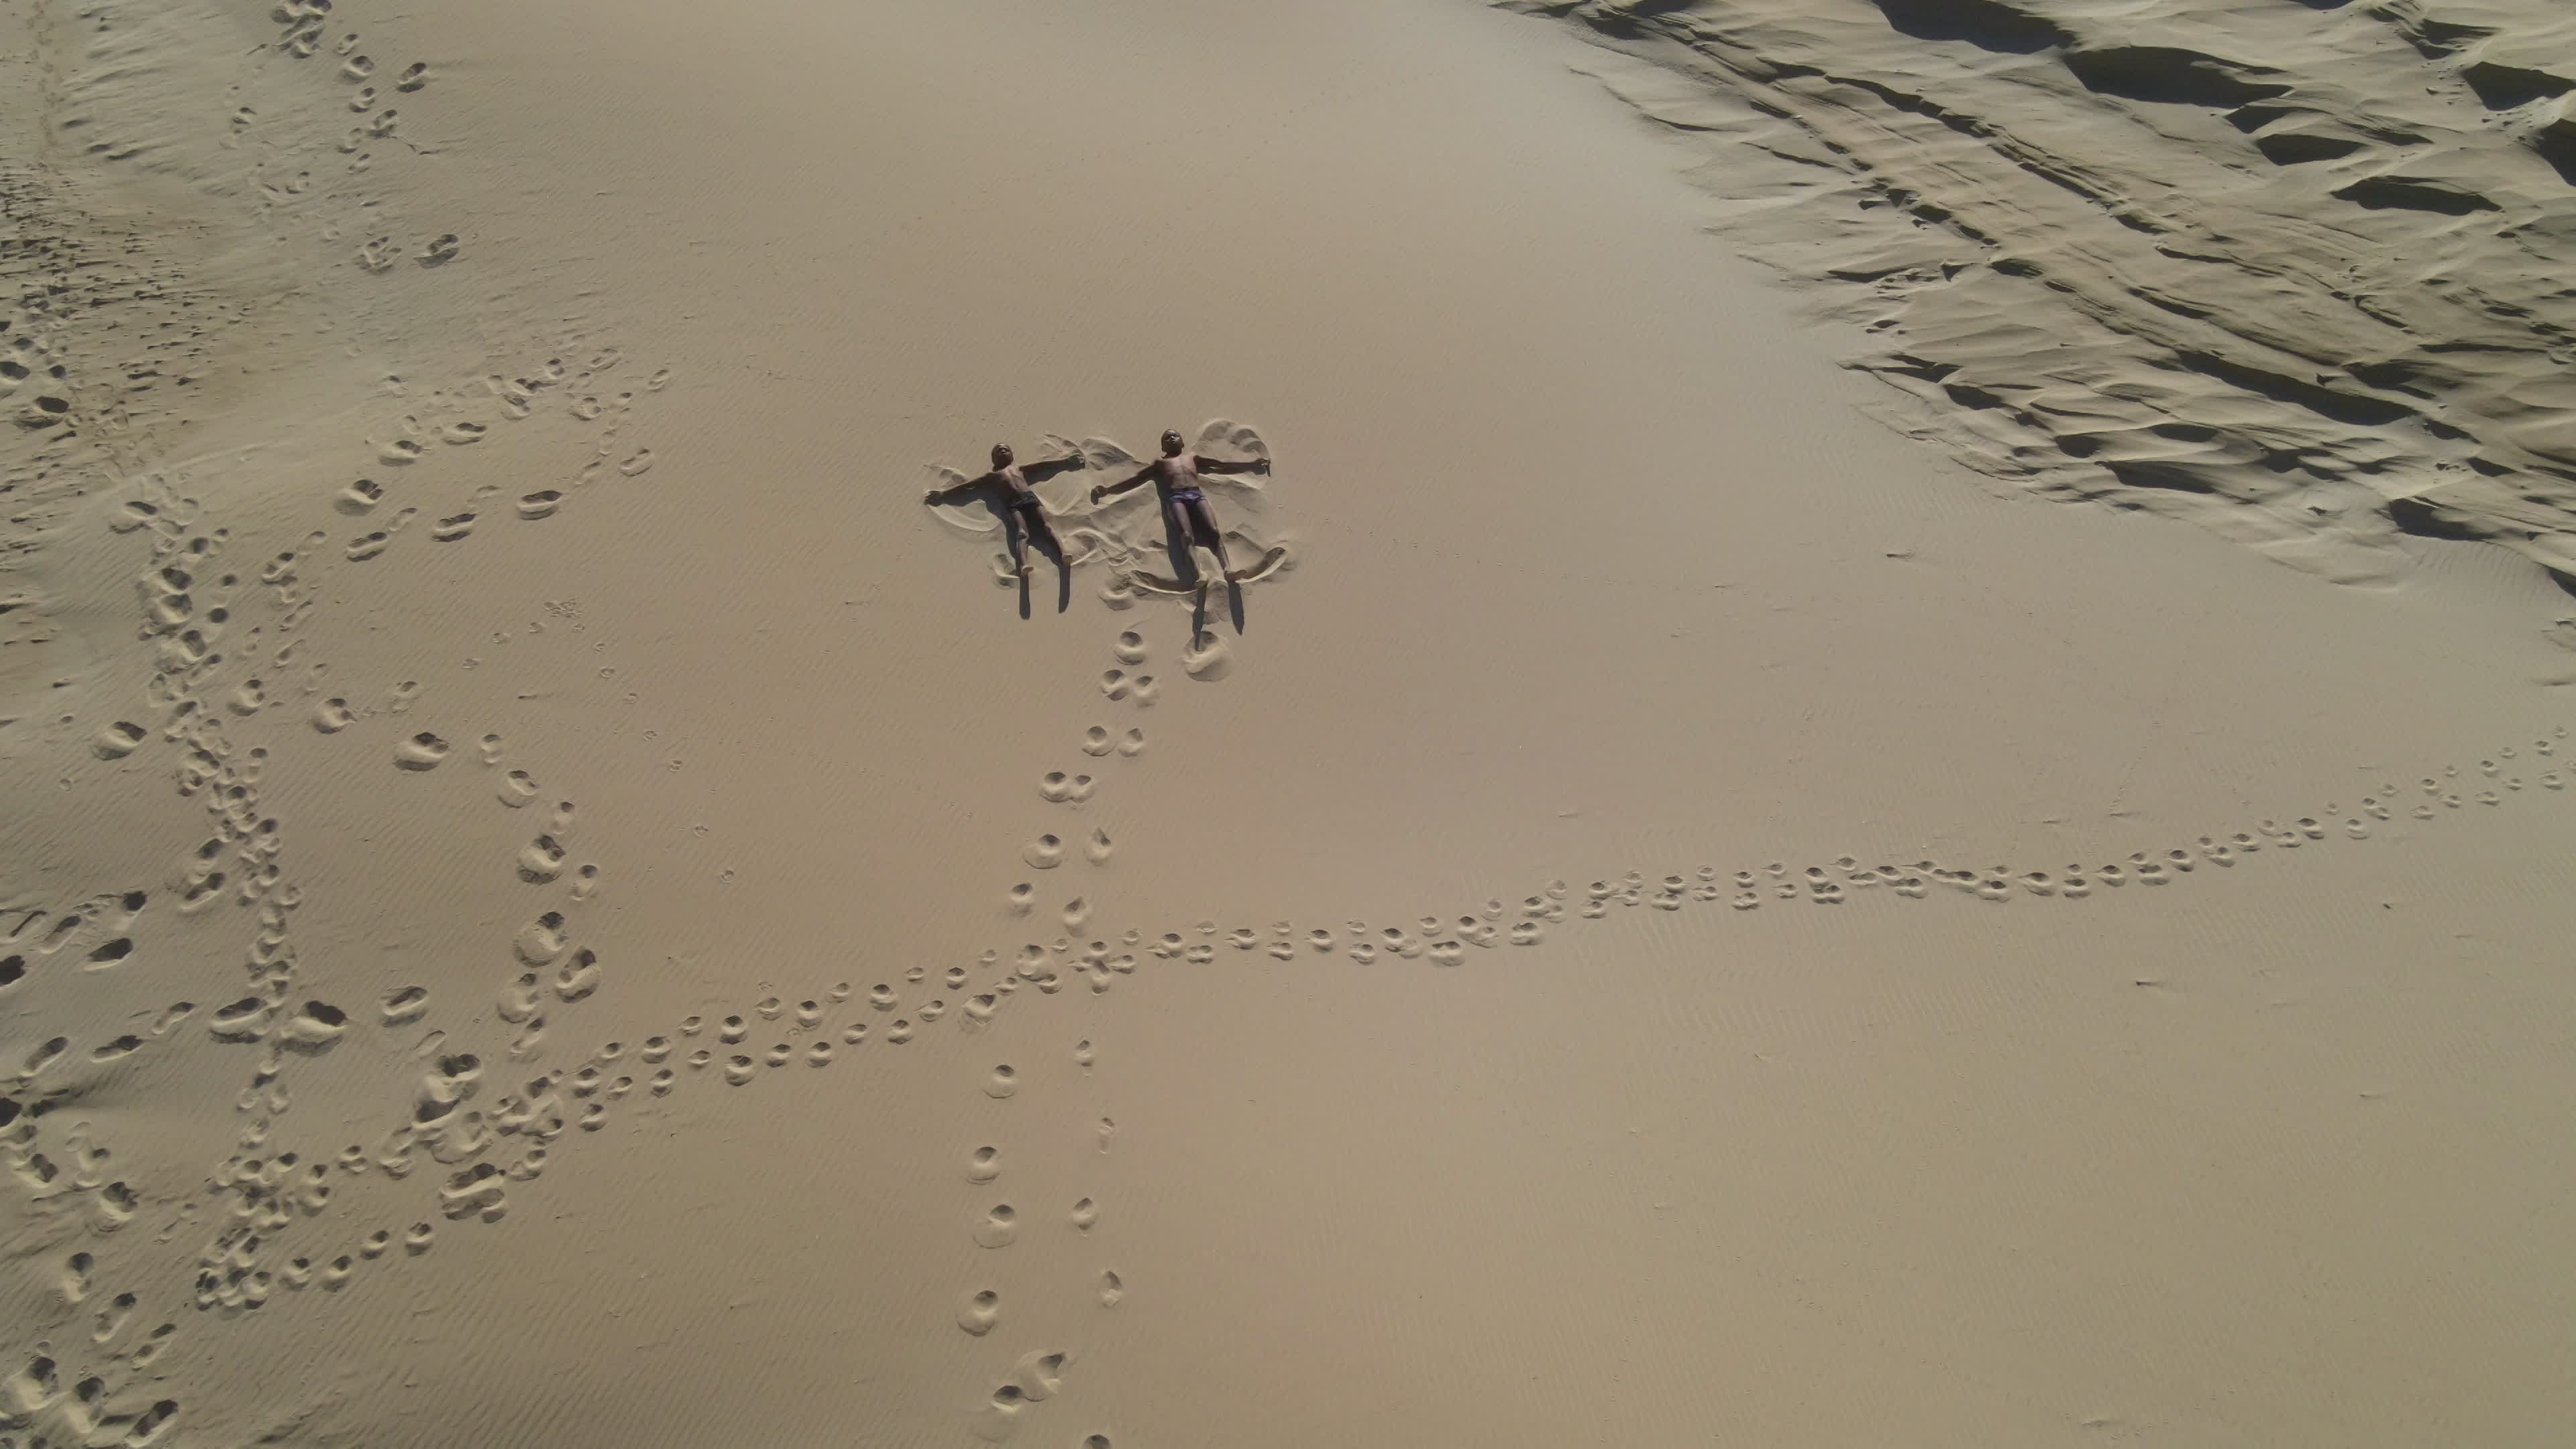 Aerial view of kids playing in sand